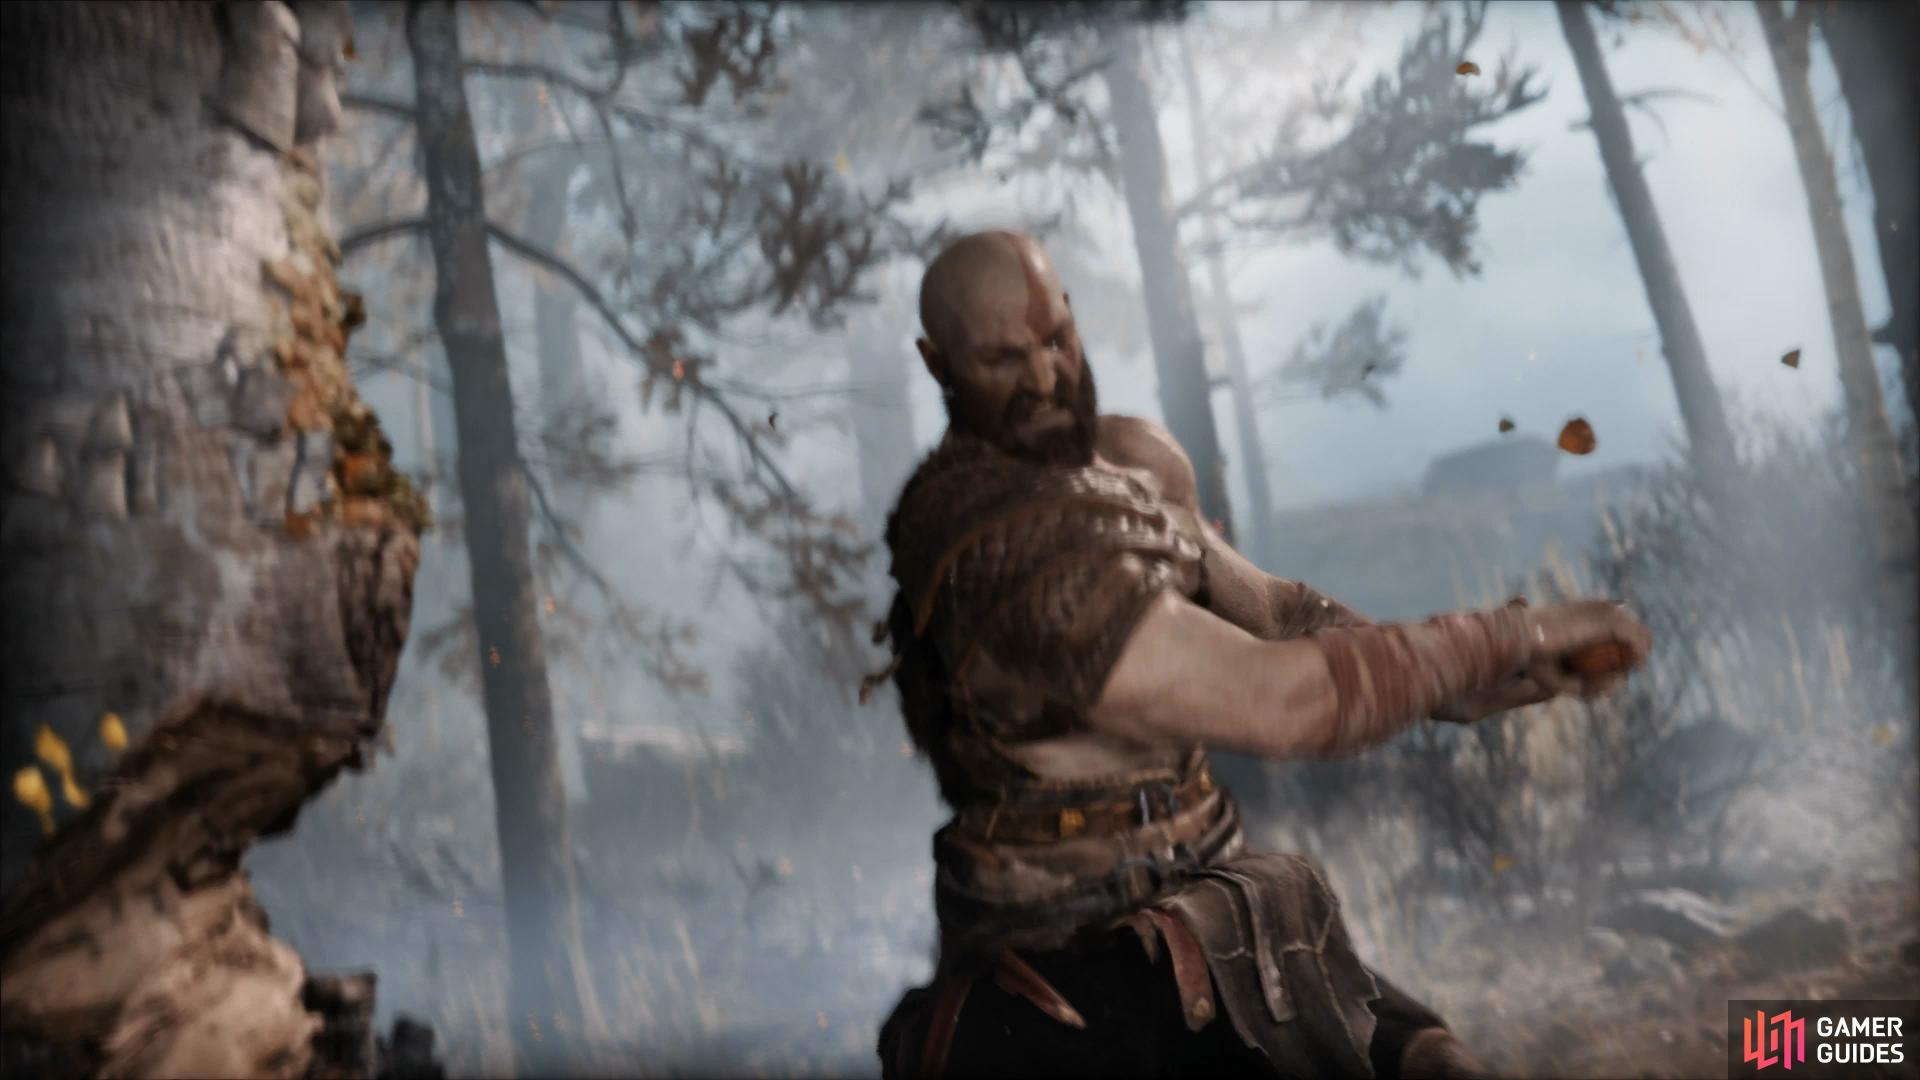 Although a cinematic, you'll still need to help Kratos fell the tree with the [R1] button